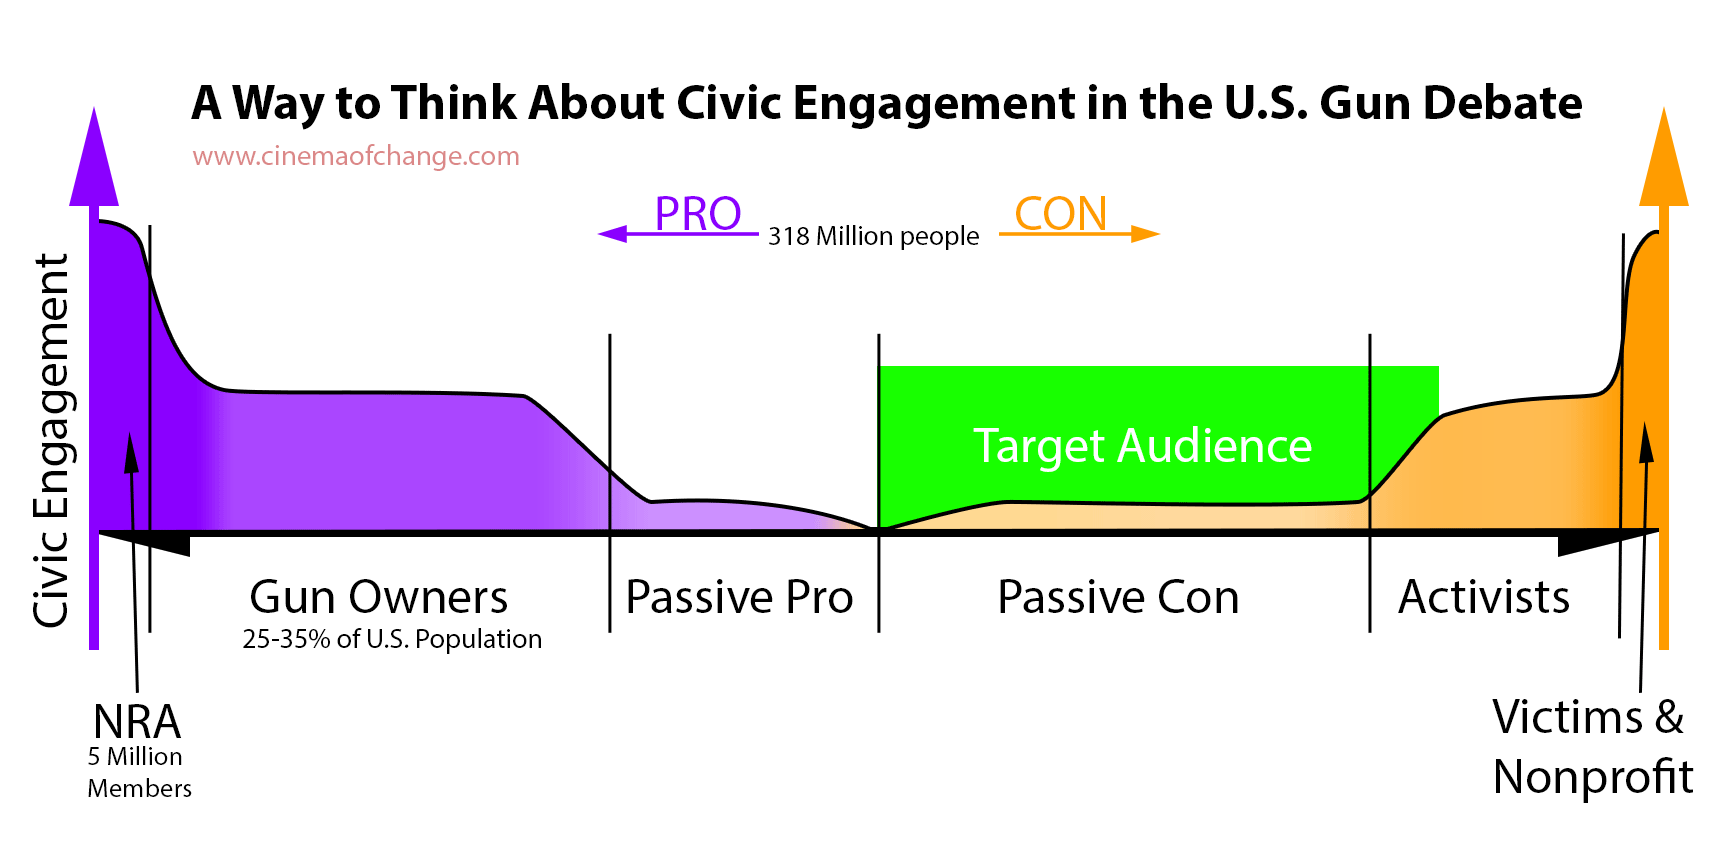 A way to think about civic engagement in the U.S. gun debate